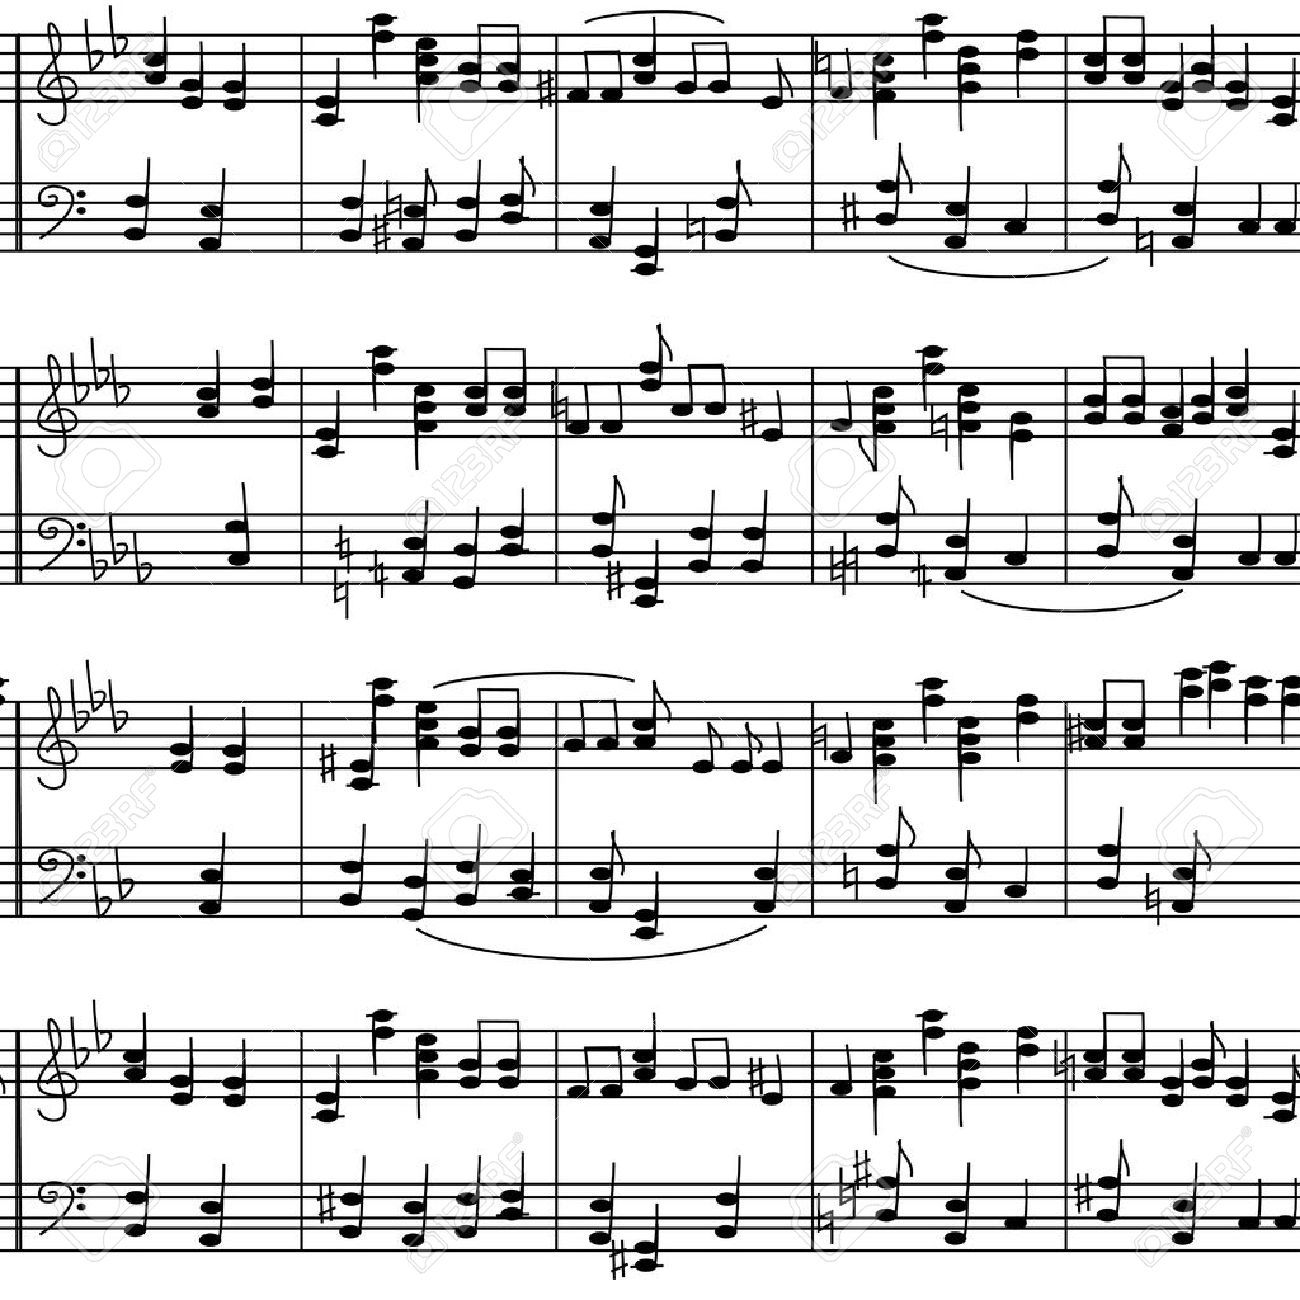 Image result for free sheet music clipart.